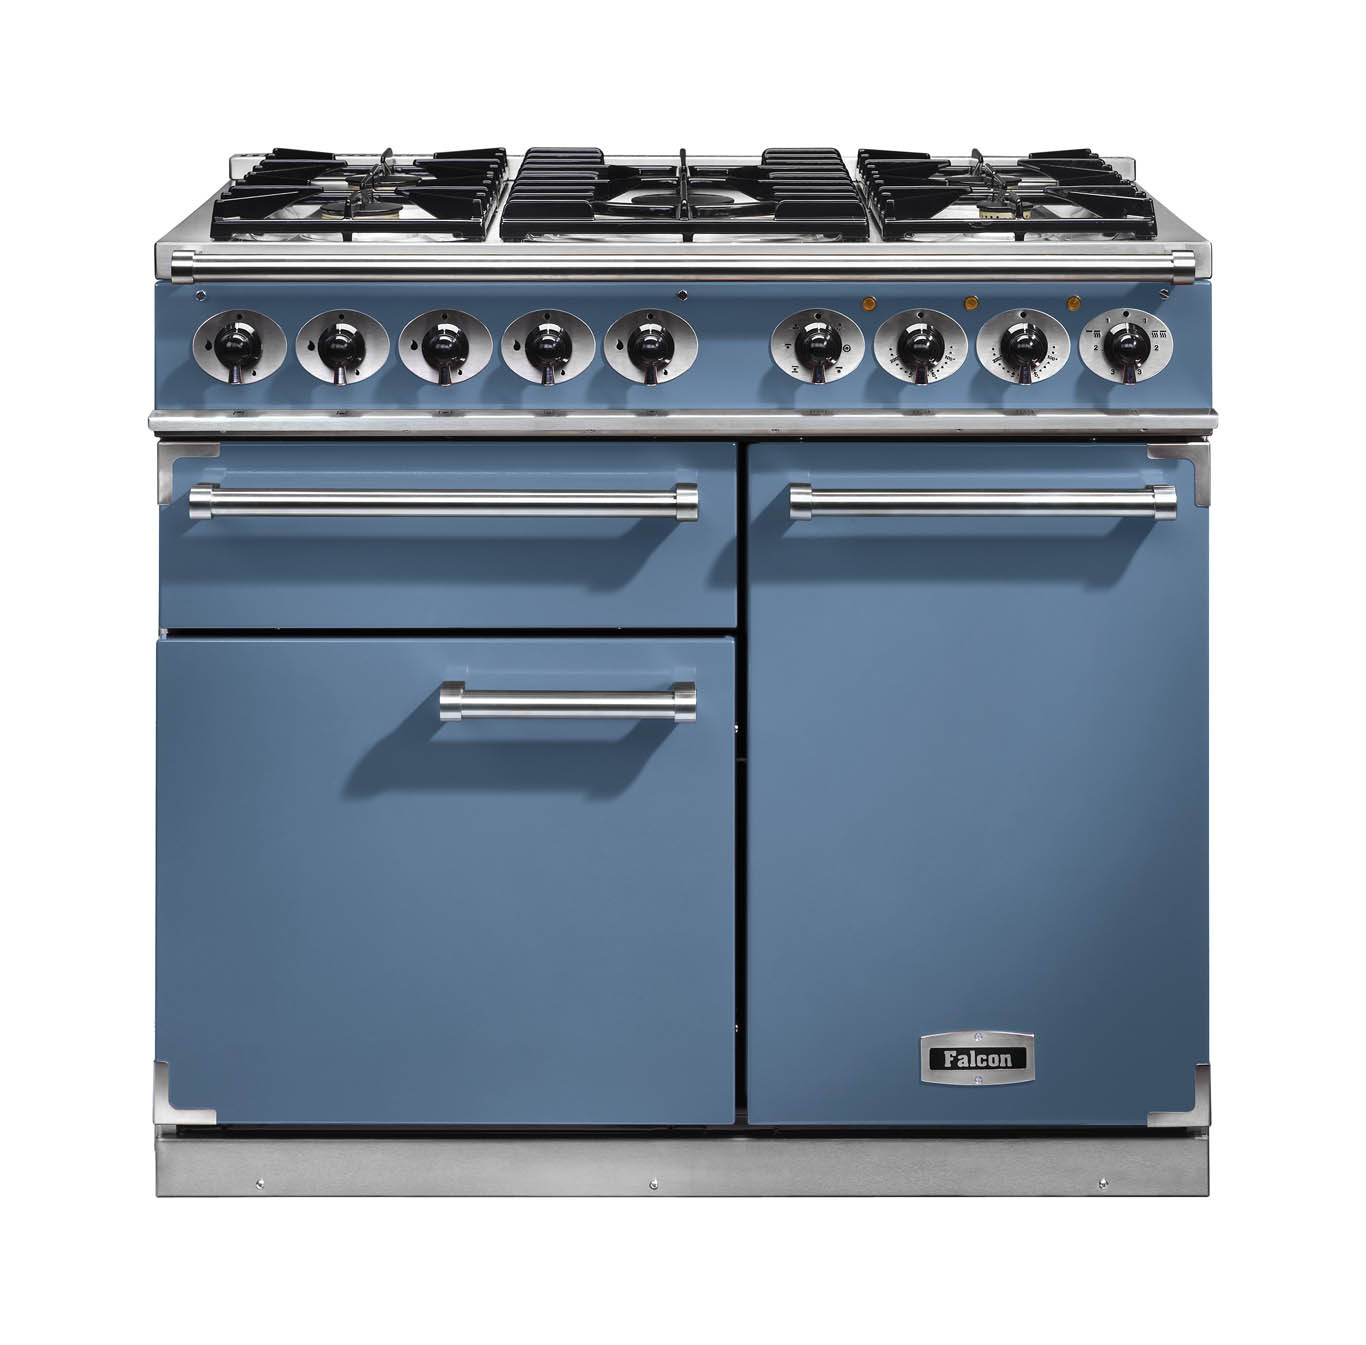 Falcon 1000 Deluxe Dual Fuel China Blue Range Cooker with Matt Pan Supports